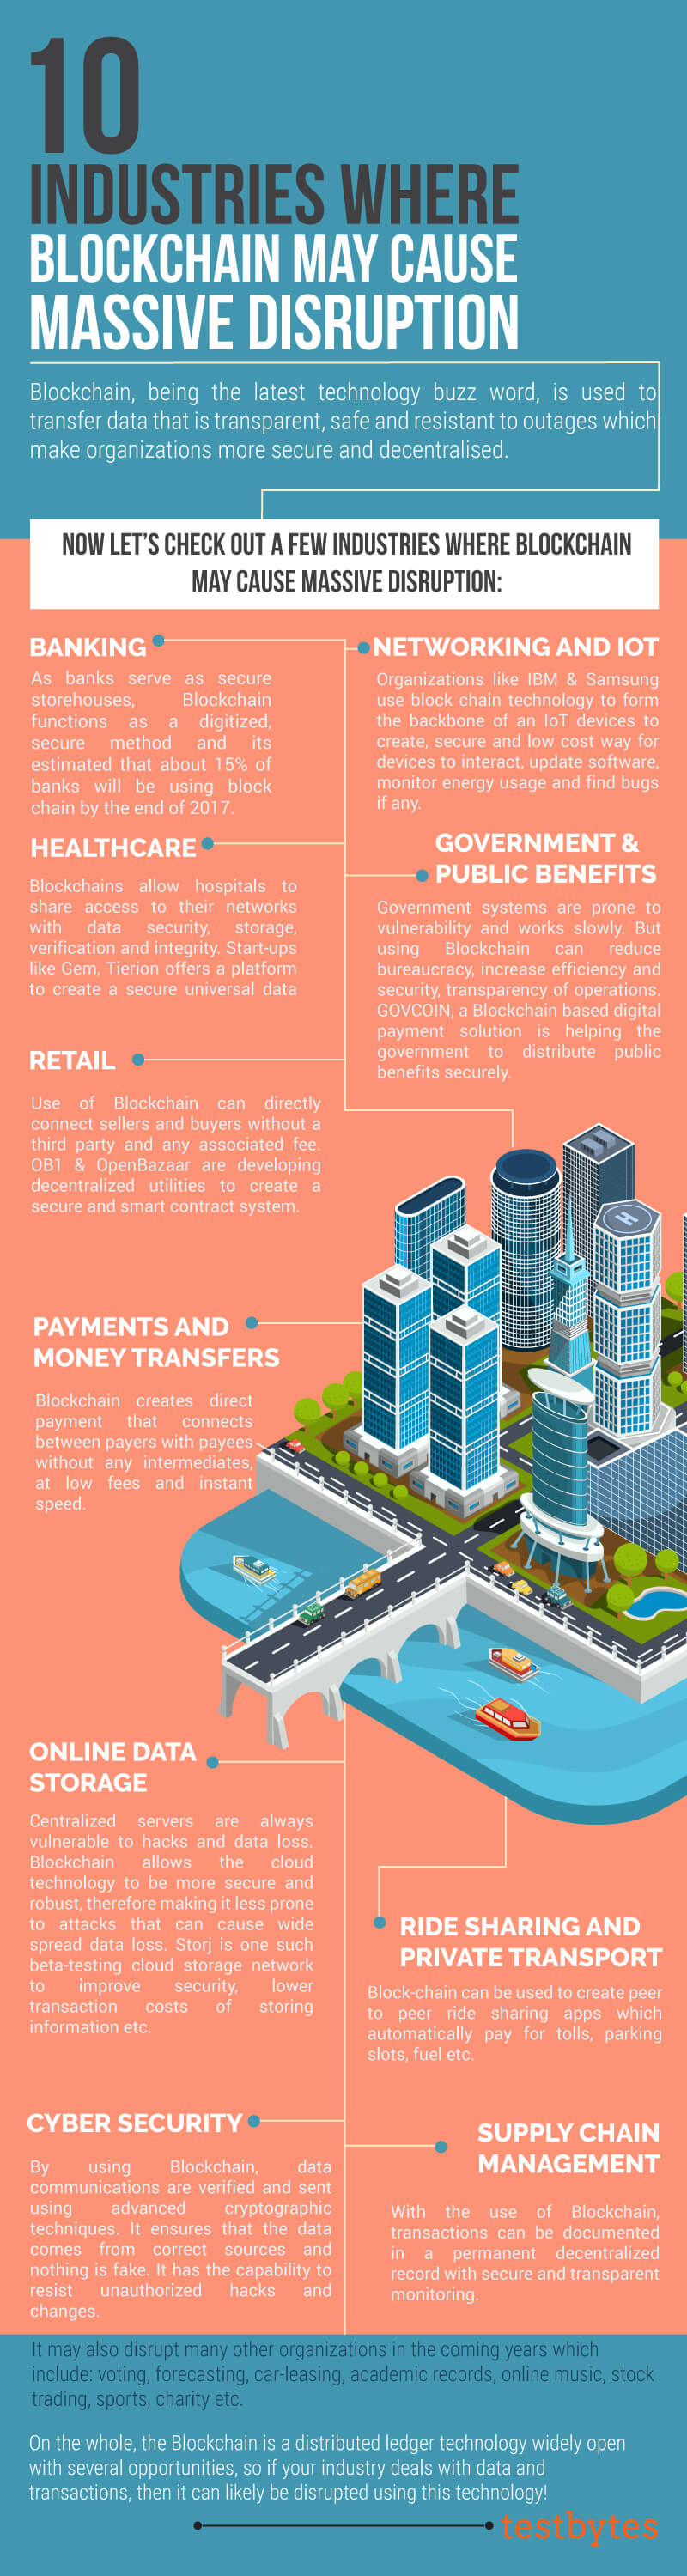 10-Industries-Where-Blockchain-May-Cause-Massive-Disruption-infographic-plaza